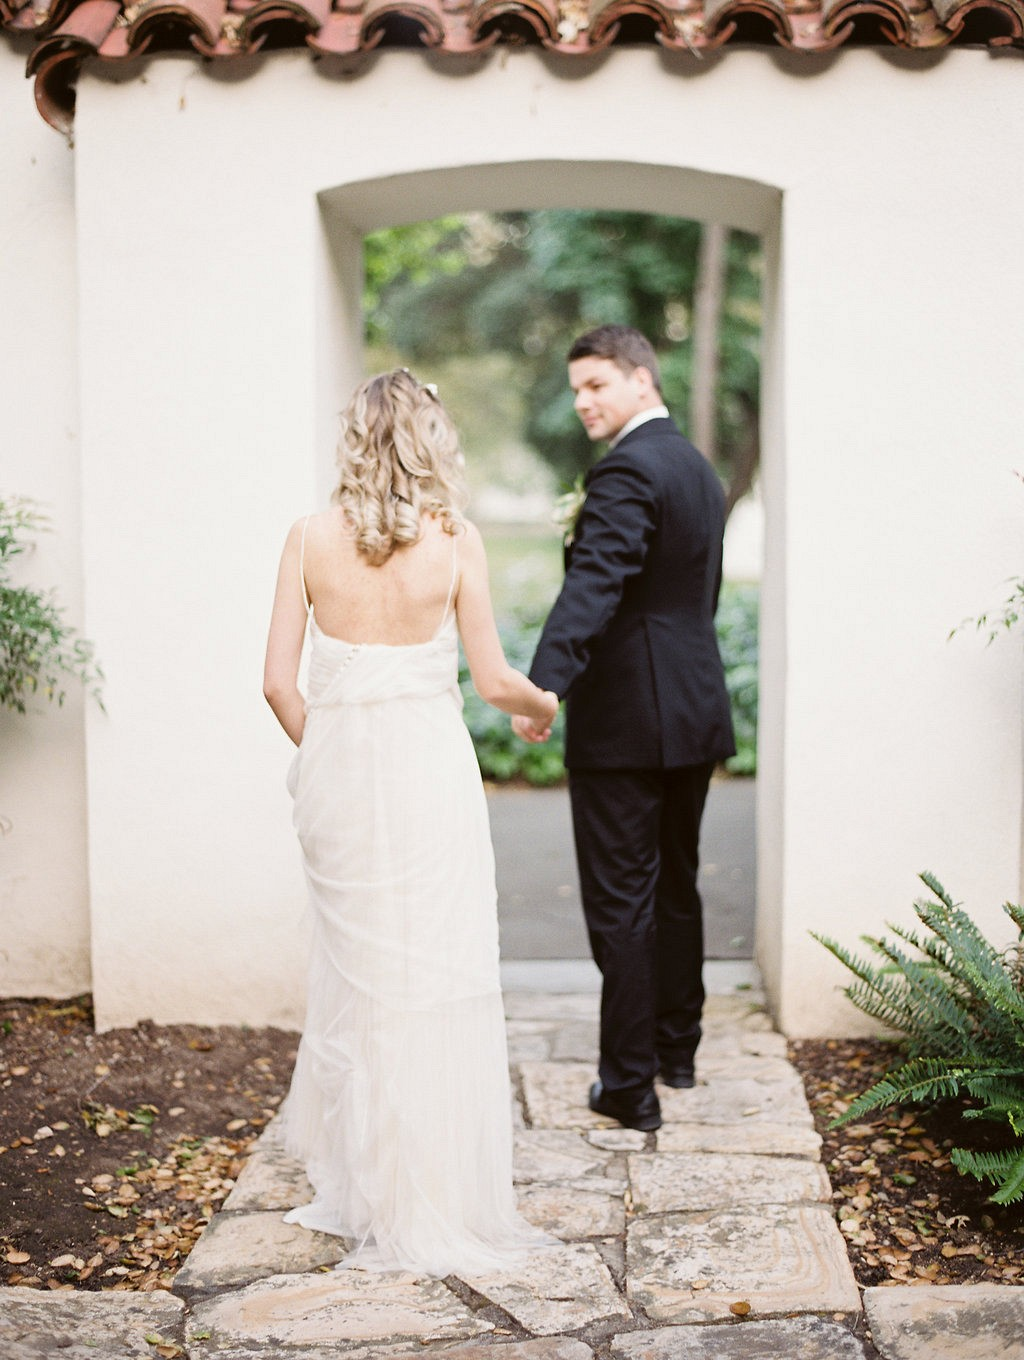 Christina and David's Luminous Anniversary Session